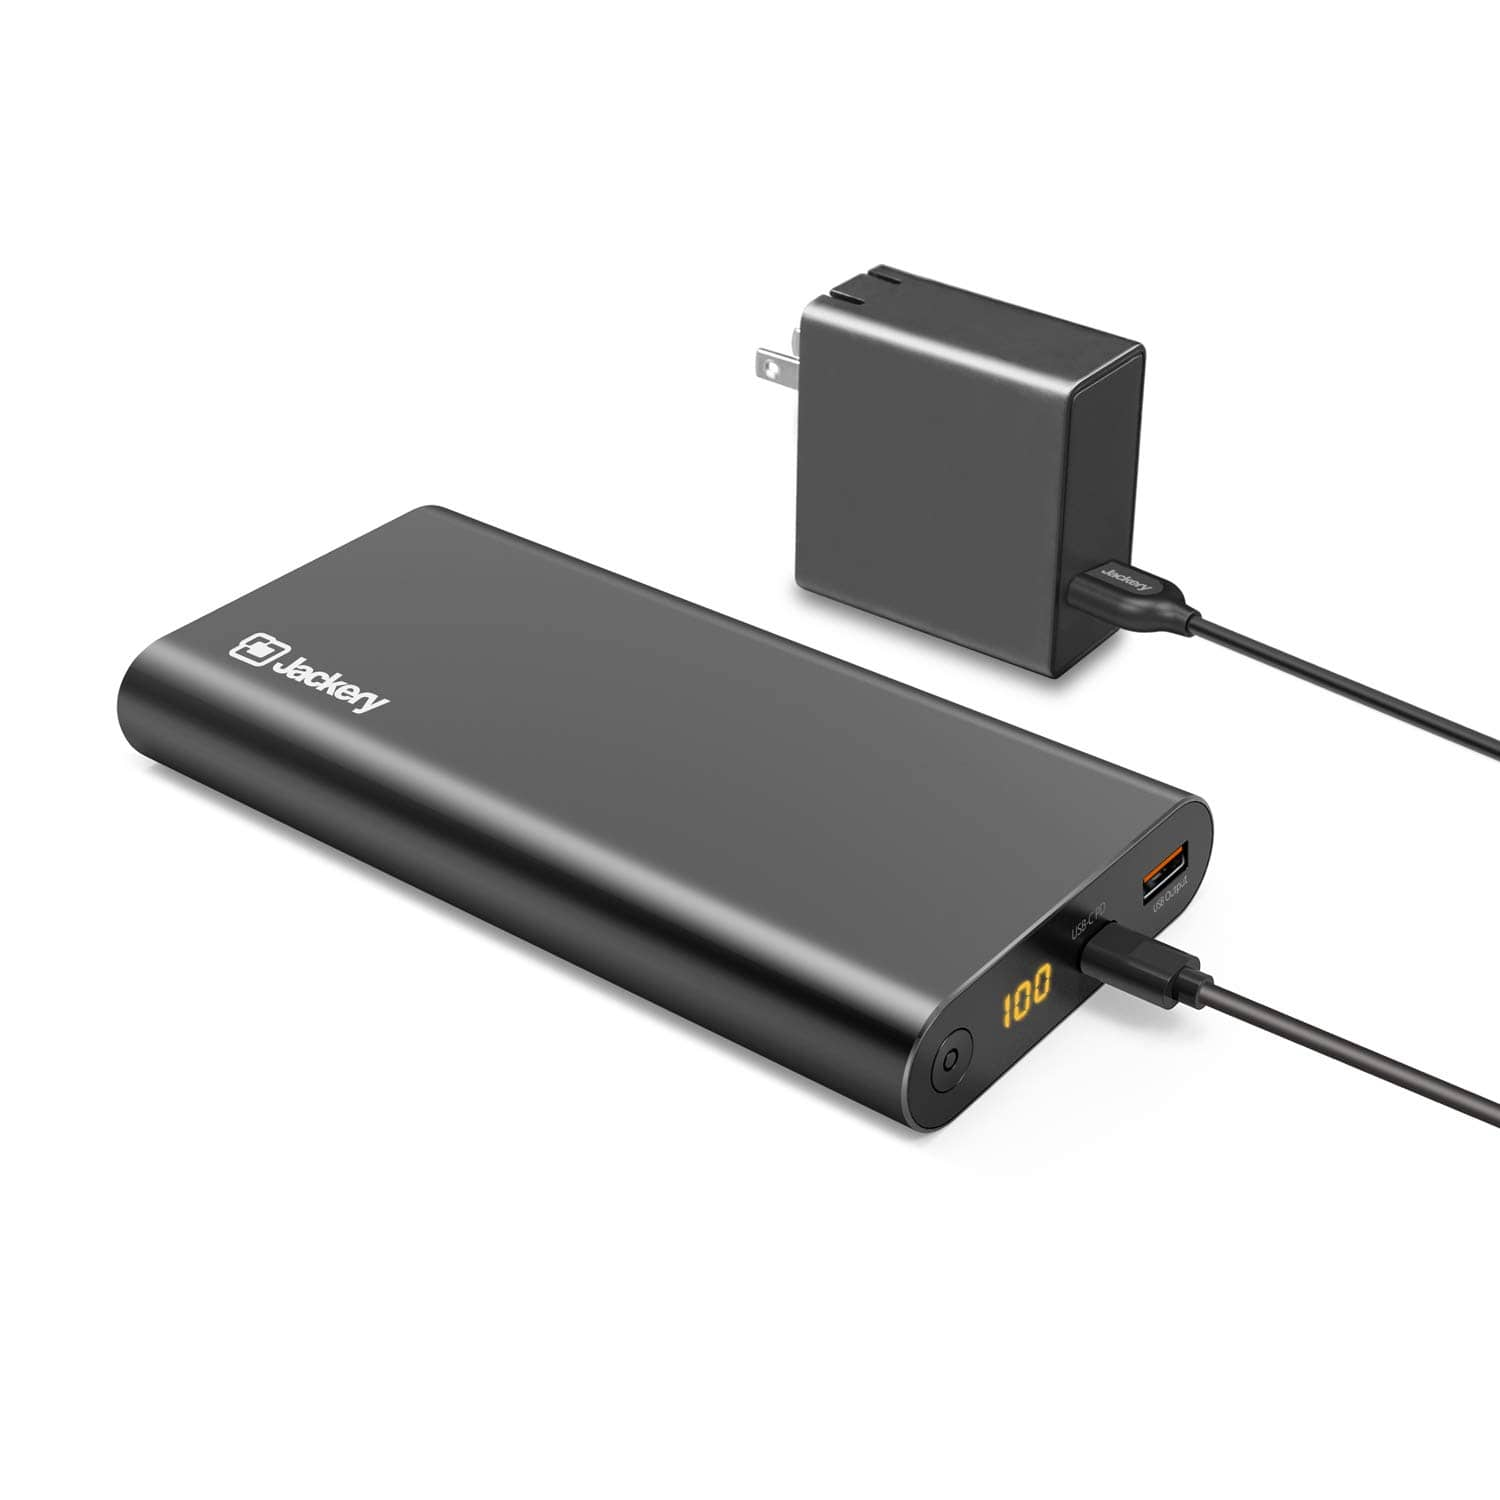 Jackery Supercharge 26800 PD, 26800mAh Portable Charger Power Outdoors USB C 45W Power Bank & 45W Wall Charger Normally $99.99 Now $69.99 Amazon Prime